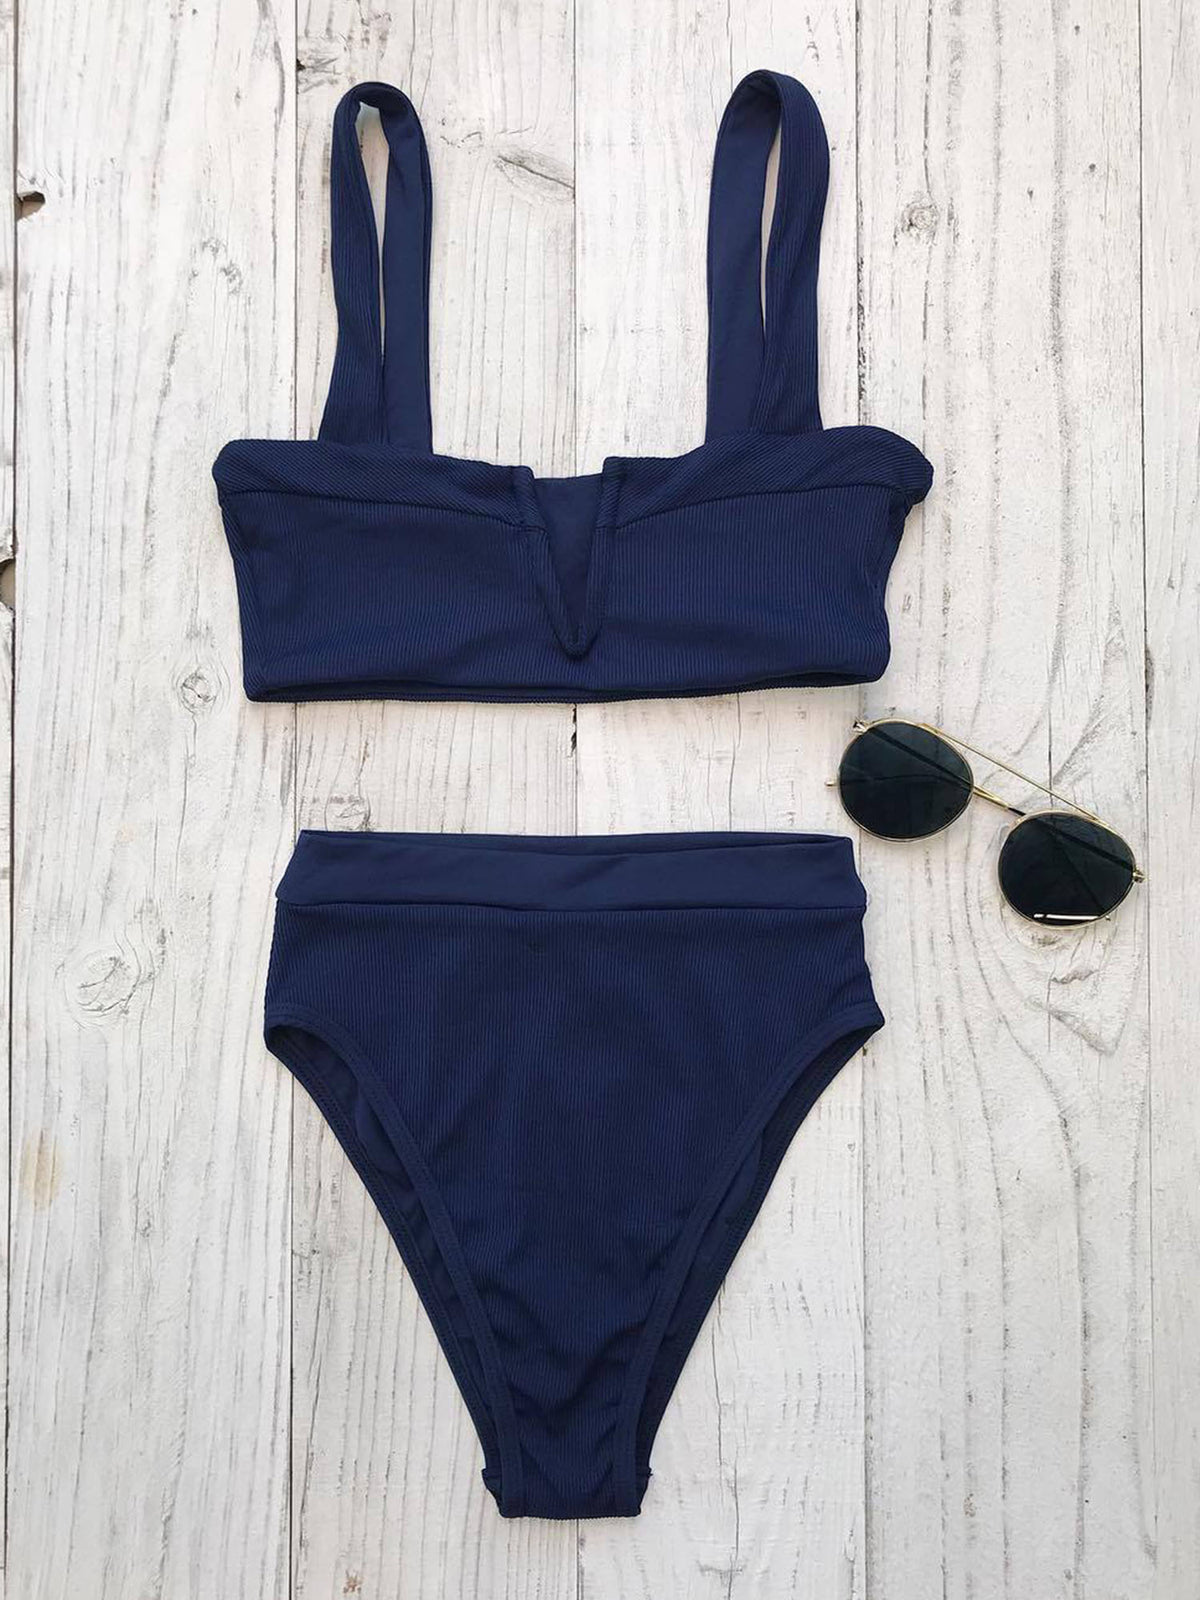 Ribbed Deep V Neck High Waisted Crop Top Bikini Set - worthtryit.com